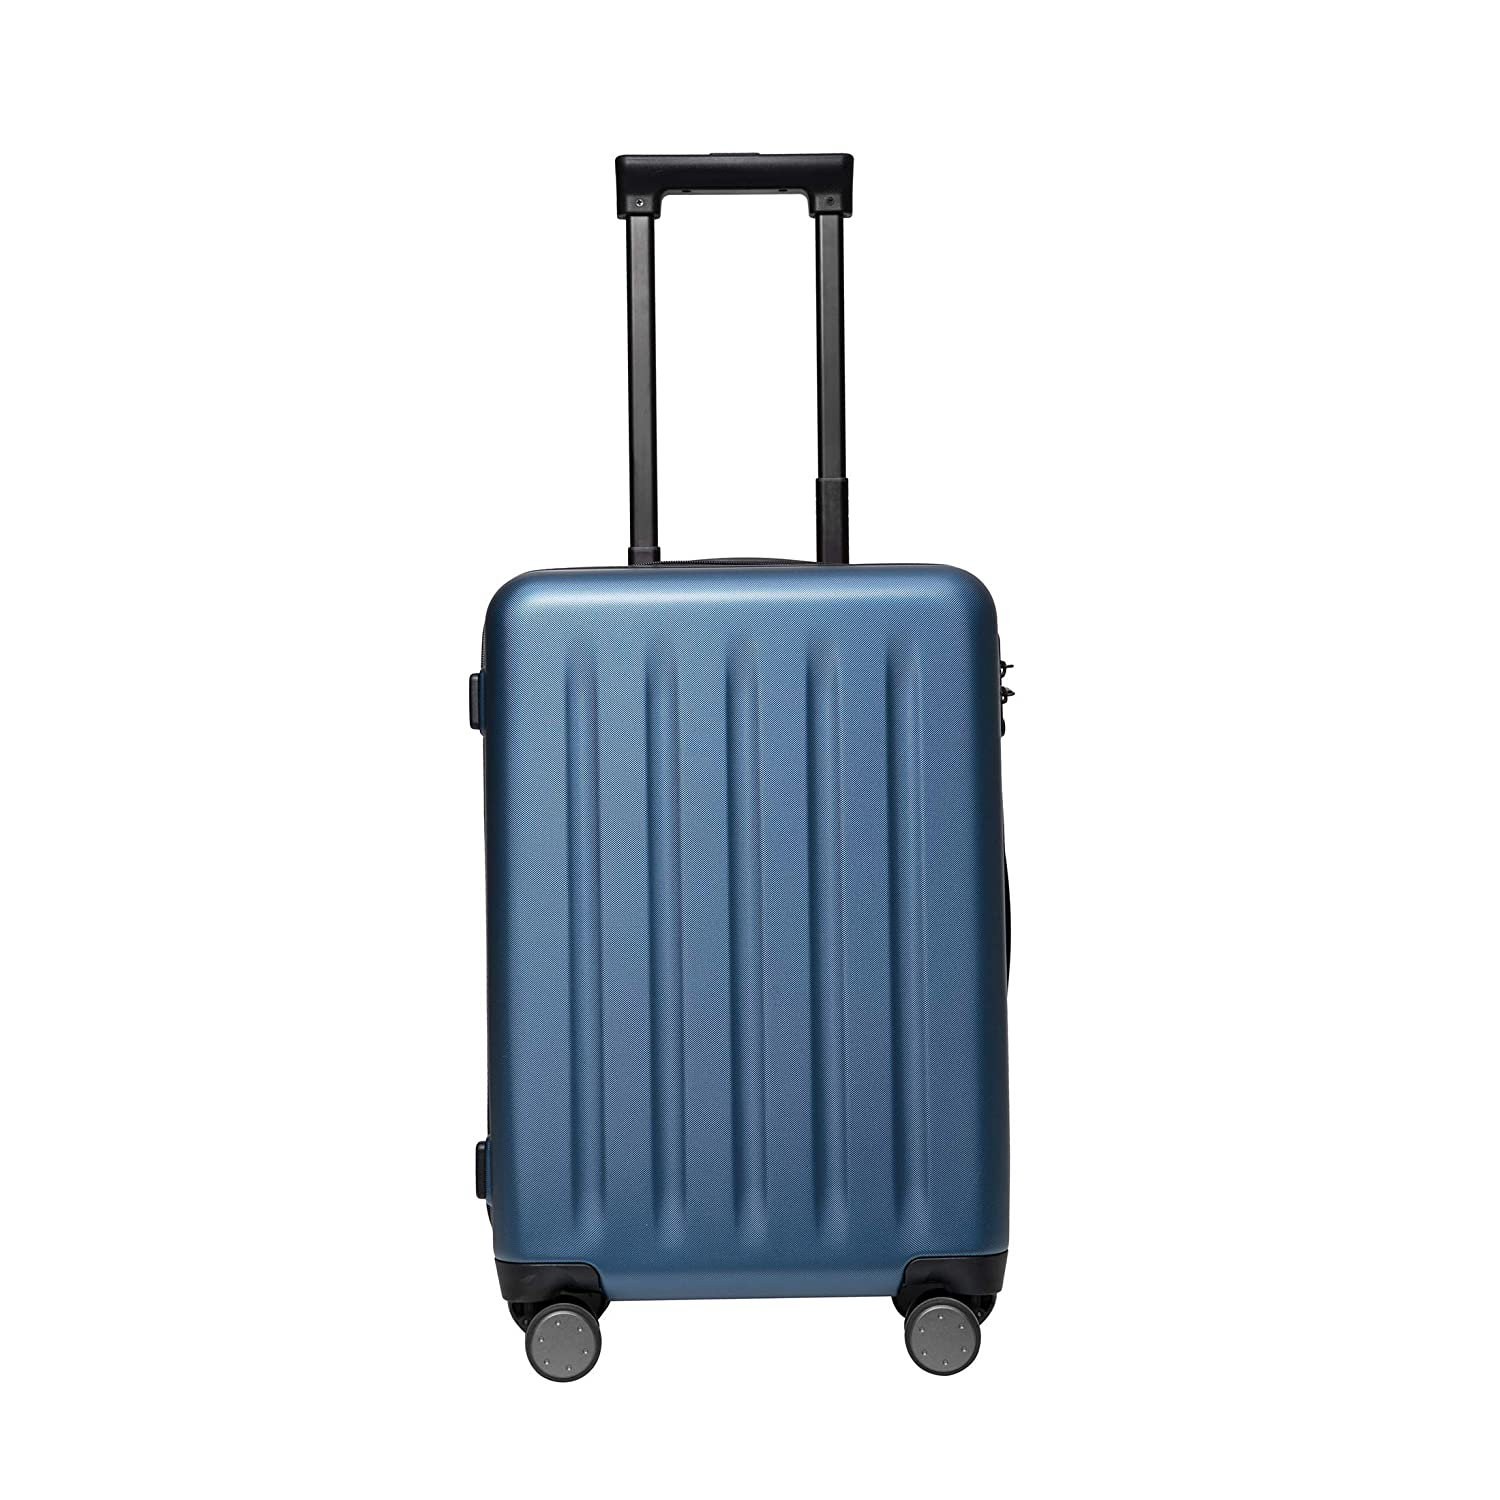 6aa3e65ef Mi Hardsided Cabin Luggage 20